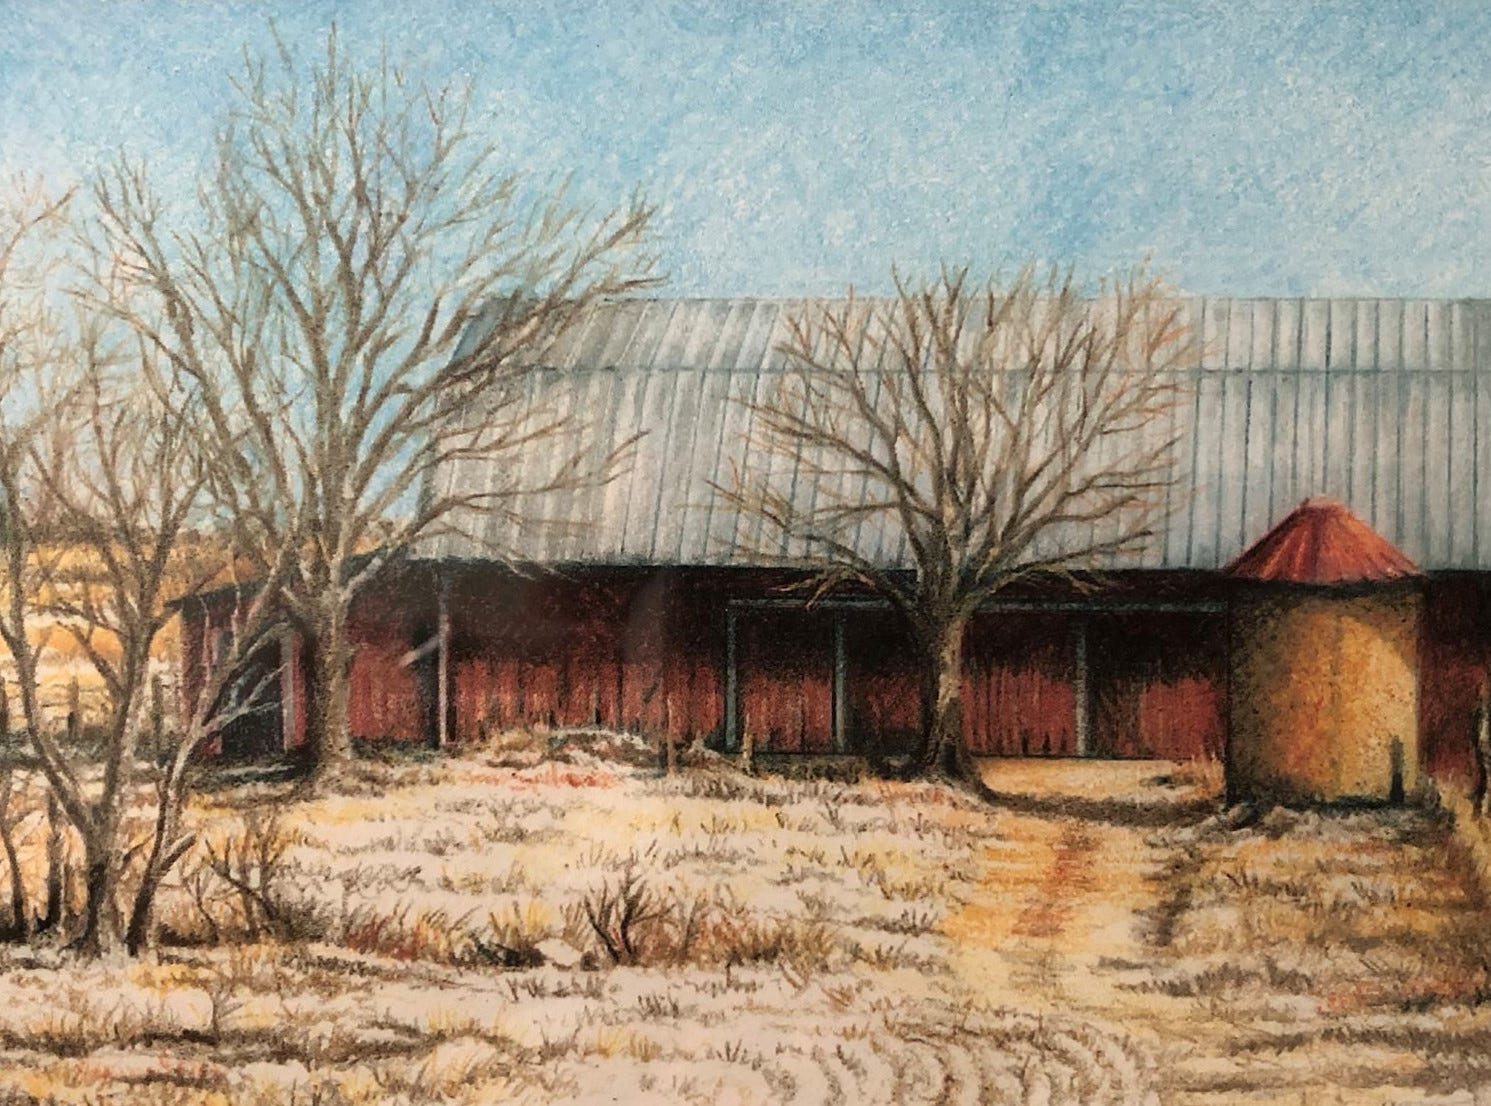 Thom Van Benschoten gave this pencil-drawing print as a Christmas gift of a barn.